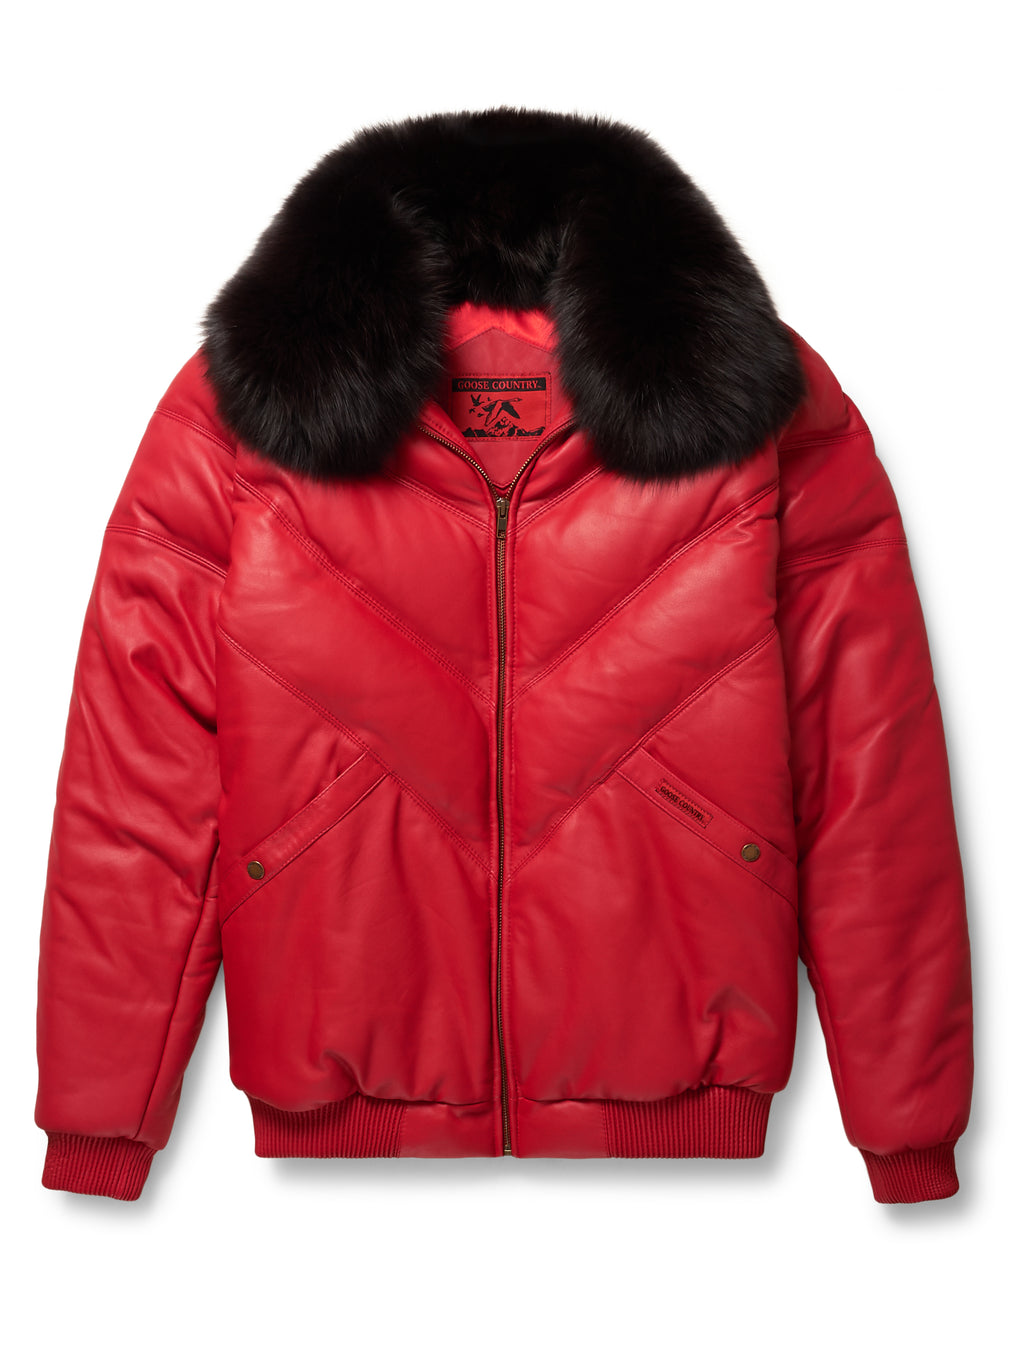 Goose Country V-Bomber: Red Leather